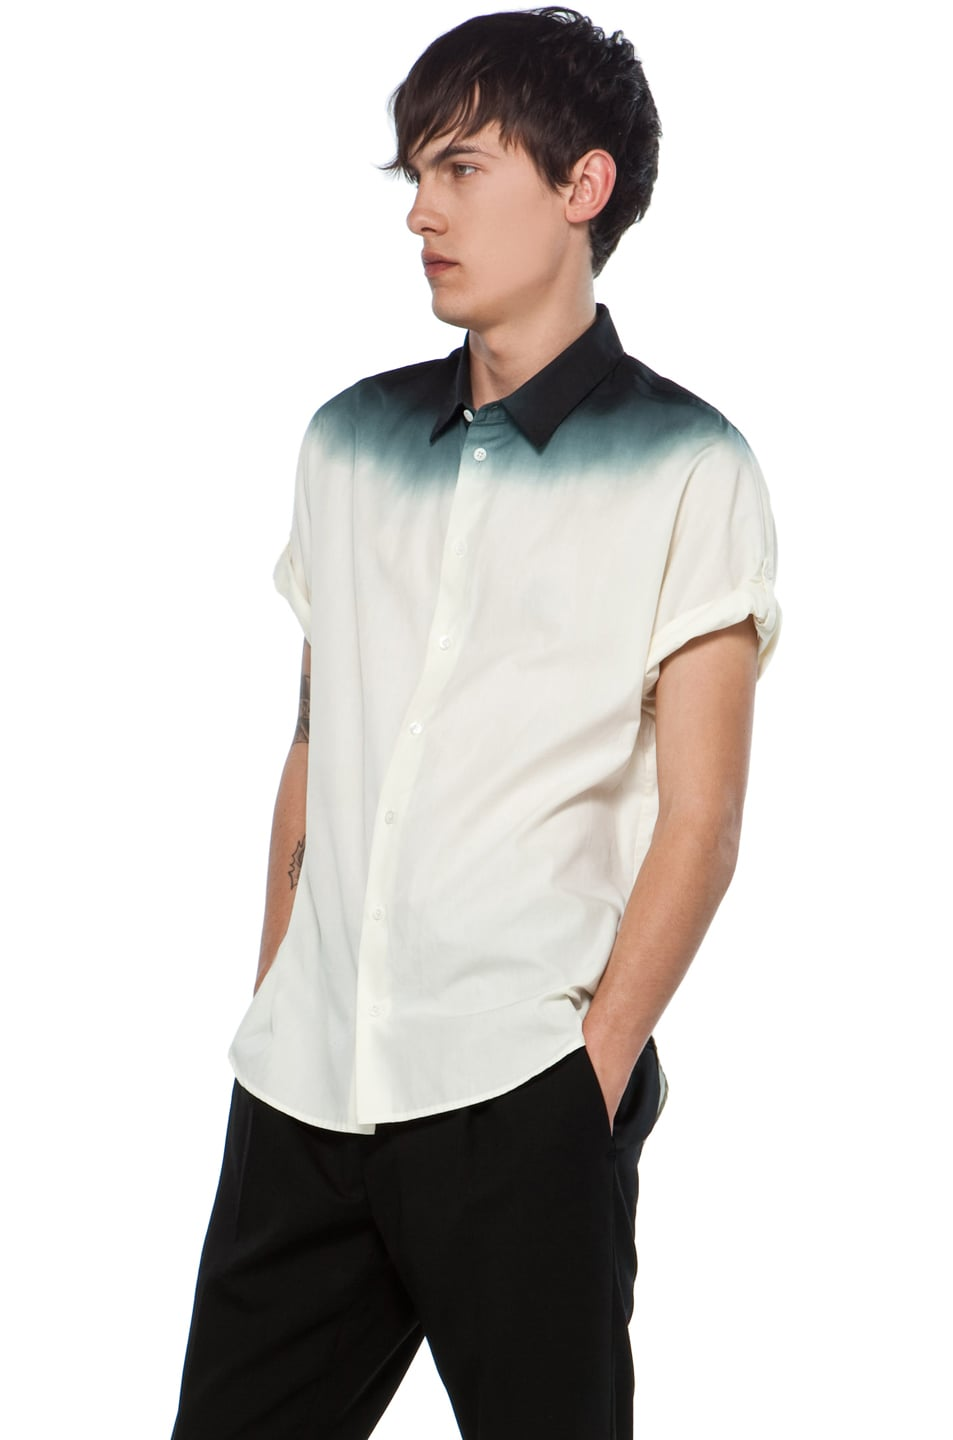 Image 2 of 3.1 phillip lim Dolman Button Up with Dip Dye Gradient in Ivory/Soft Black